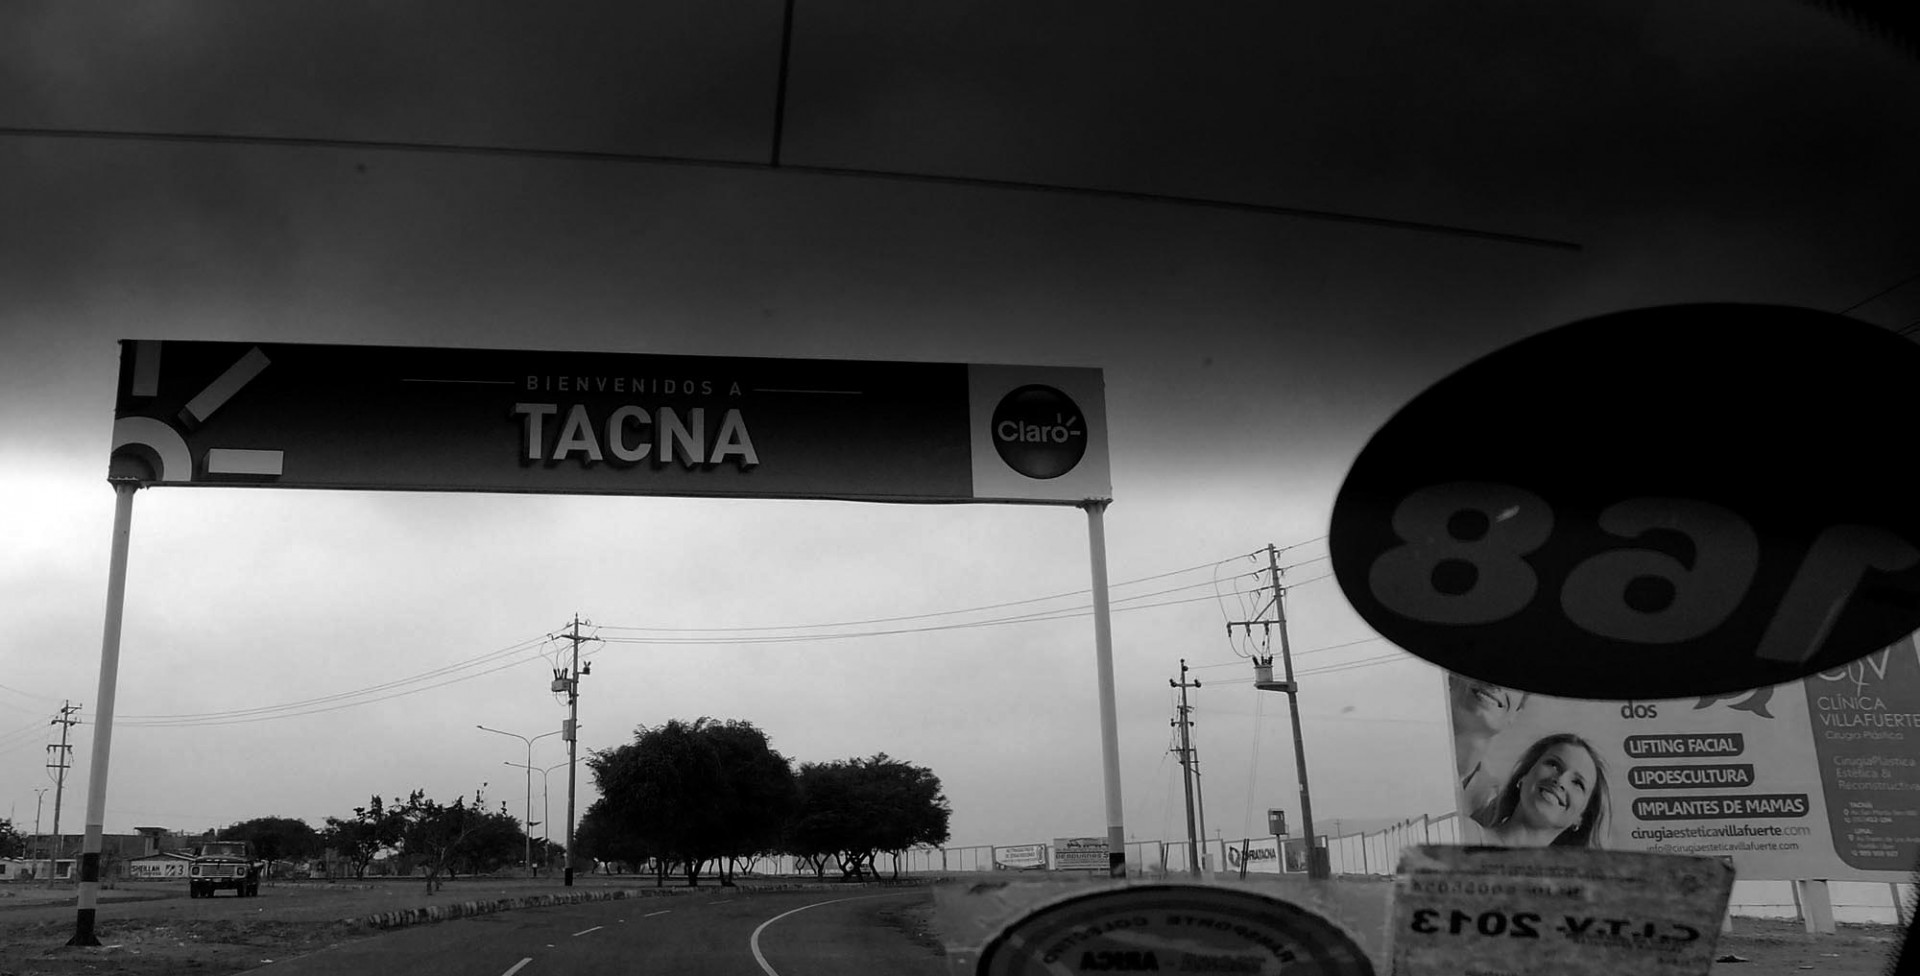 Welcome Tacna